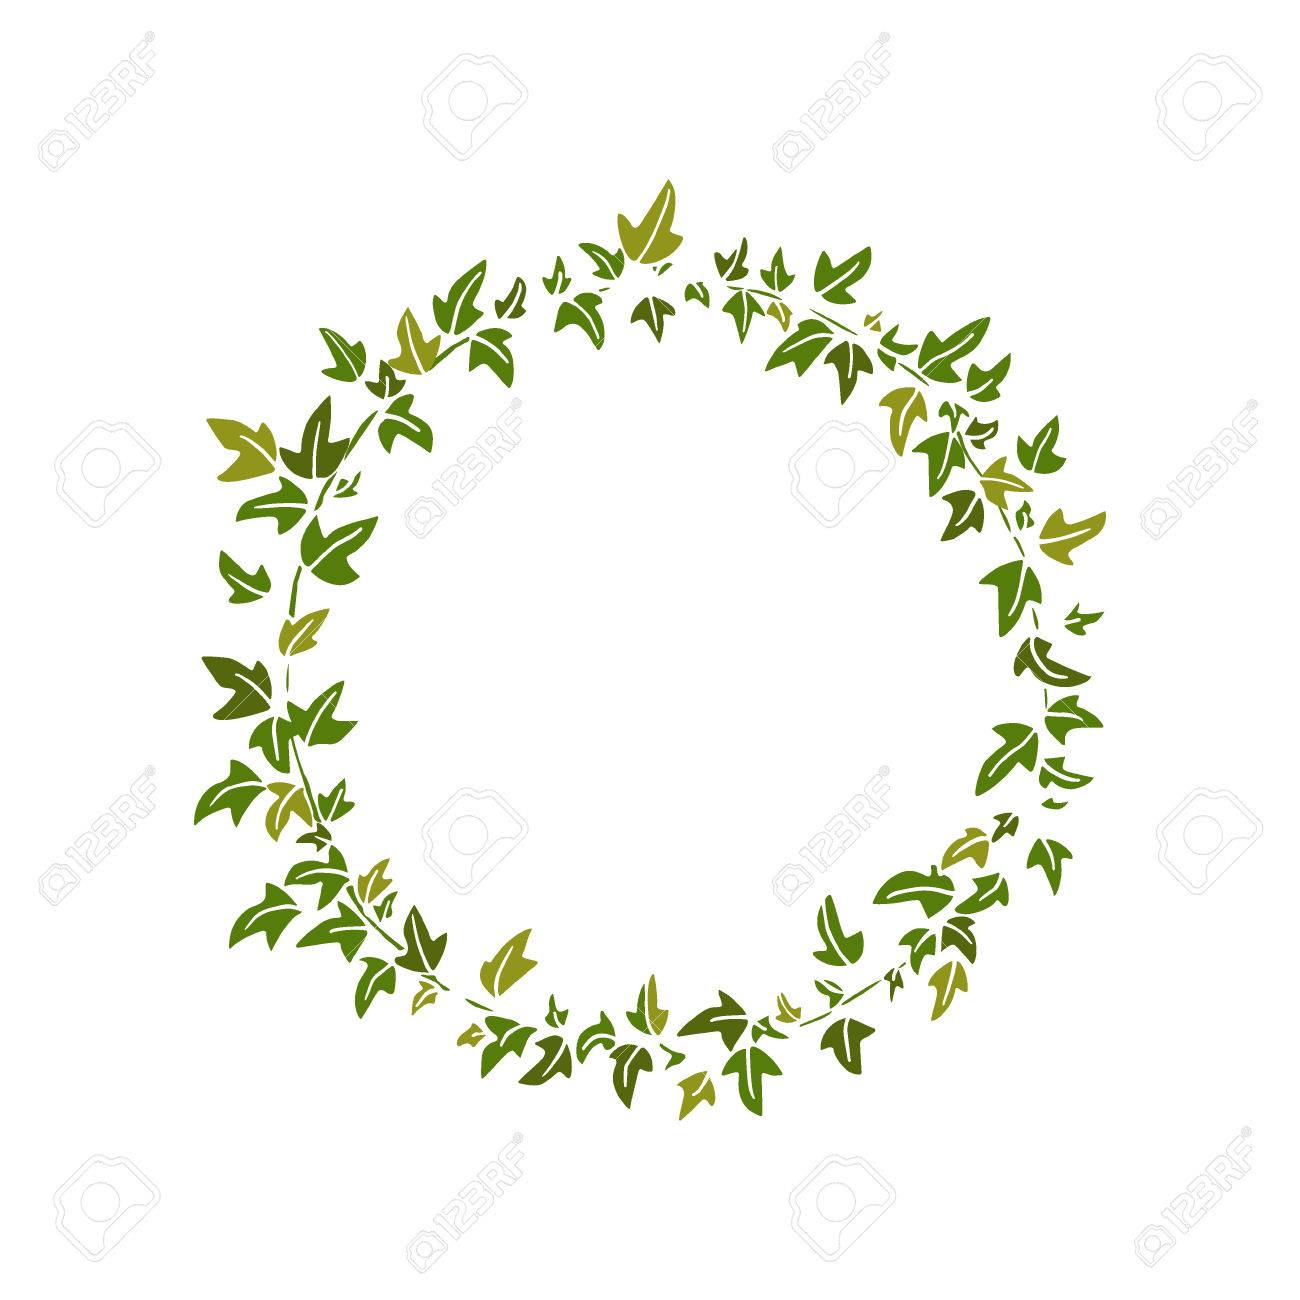 english ivy wreath royalty free cliparts vectors and stock